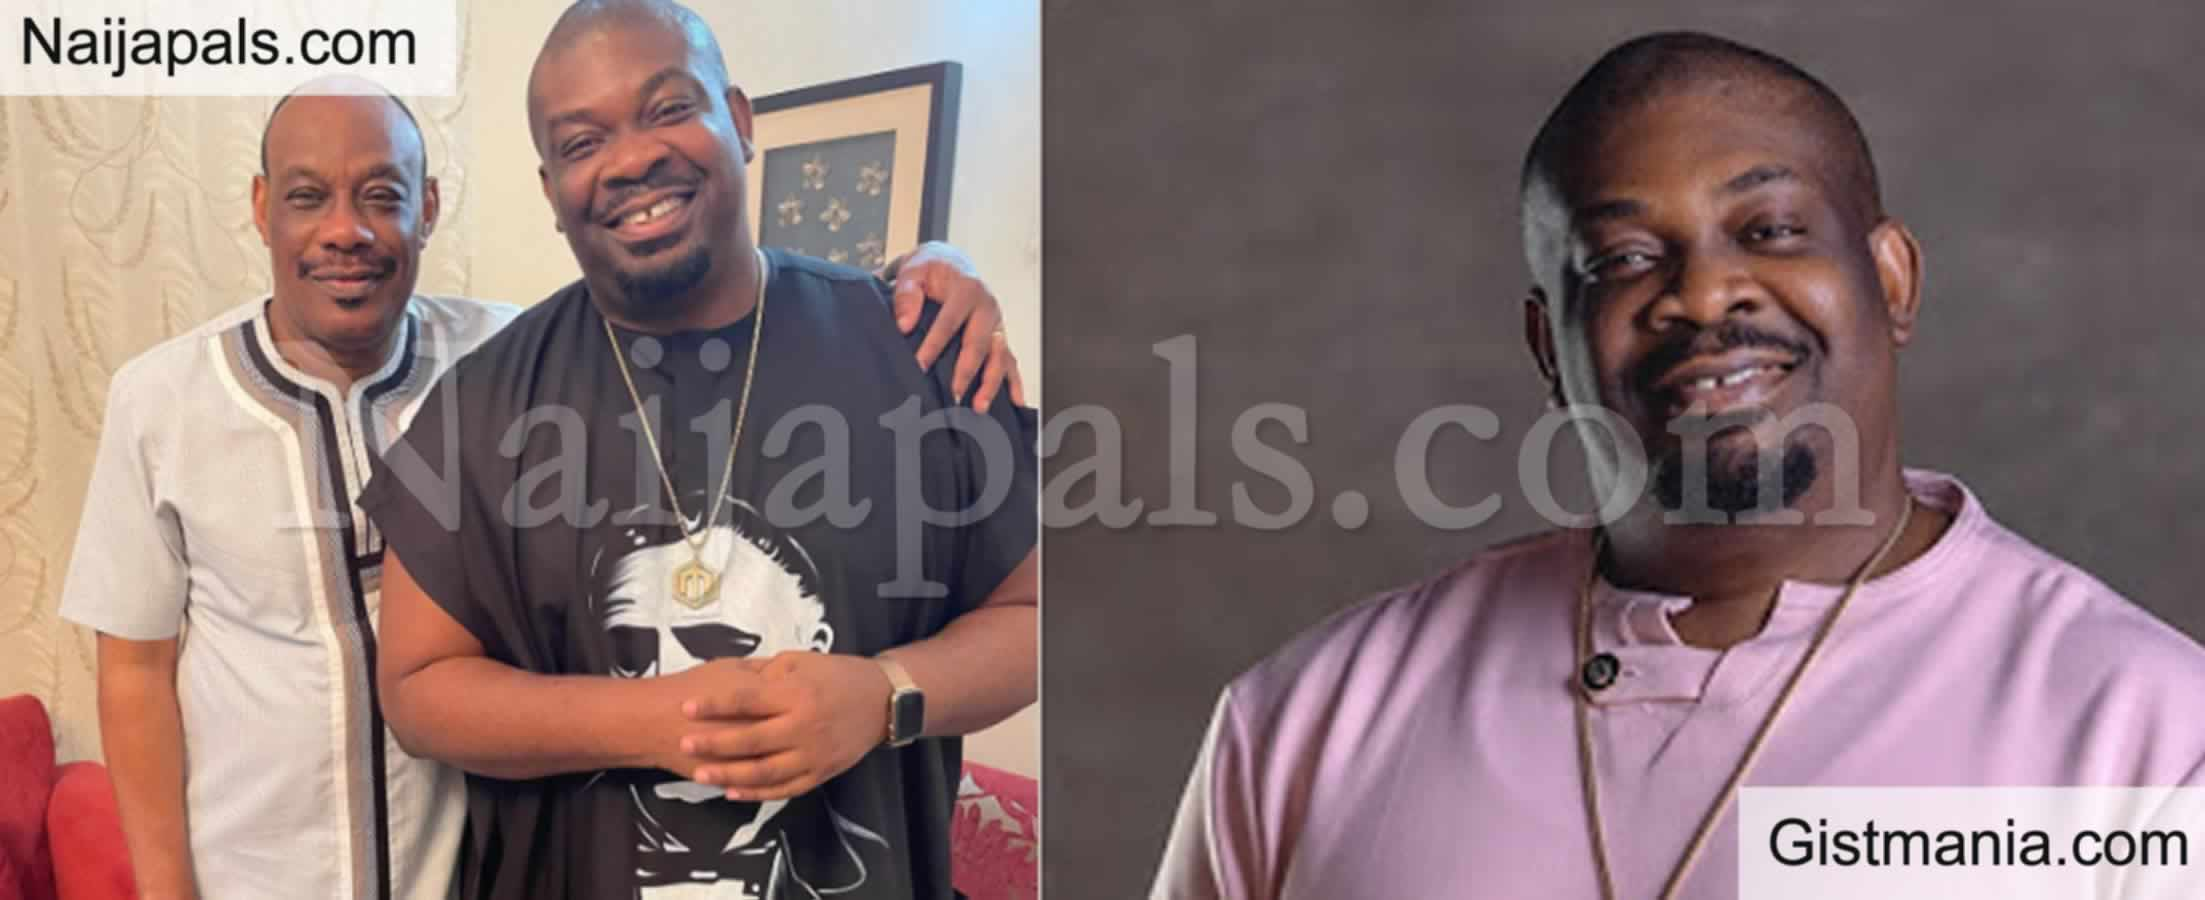 <img alt='.' class='lazyload' data-src='https://img.gistmania.com/emot/photo.png' /> <b>This Lovely Photo Of Don Jazzy And His Father Has Got People Talking</b>